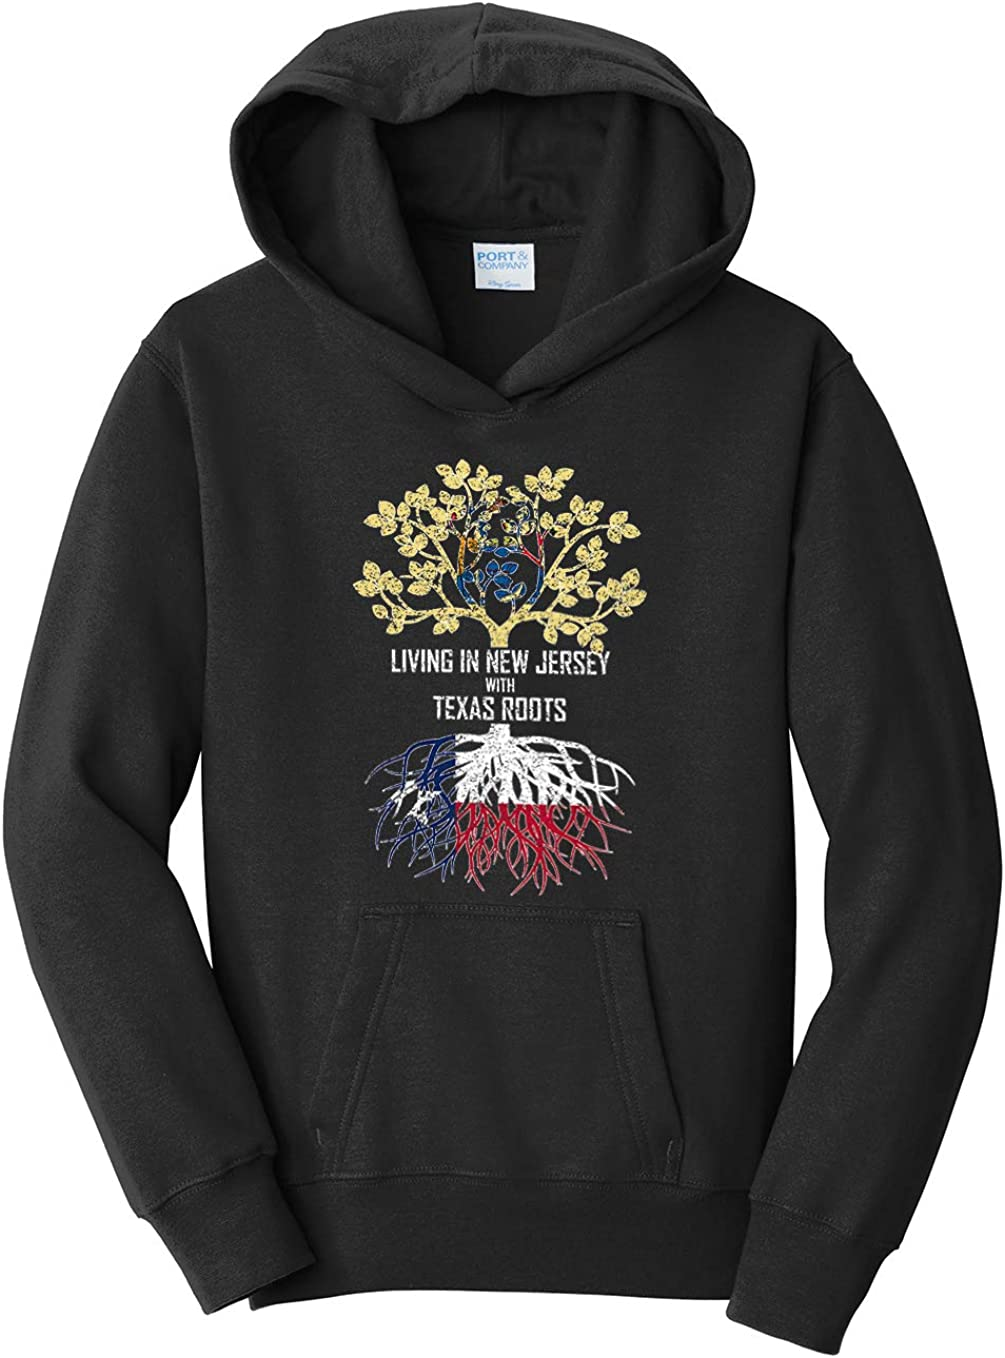 Tenacitee Girls Living in New Jersey with Texas Roots Hooded Sweatshirt